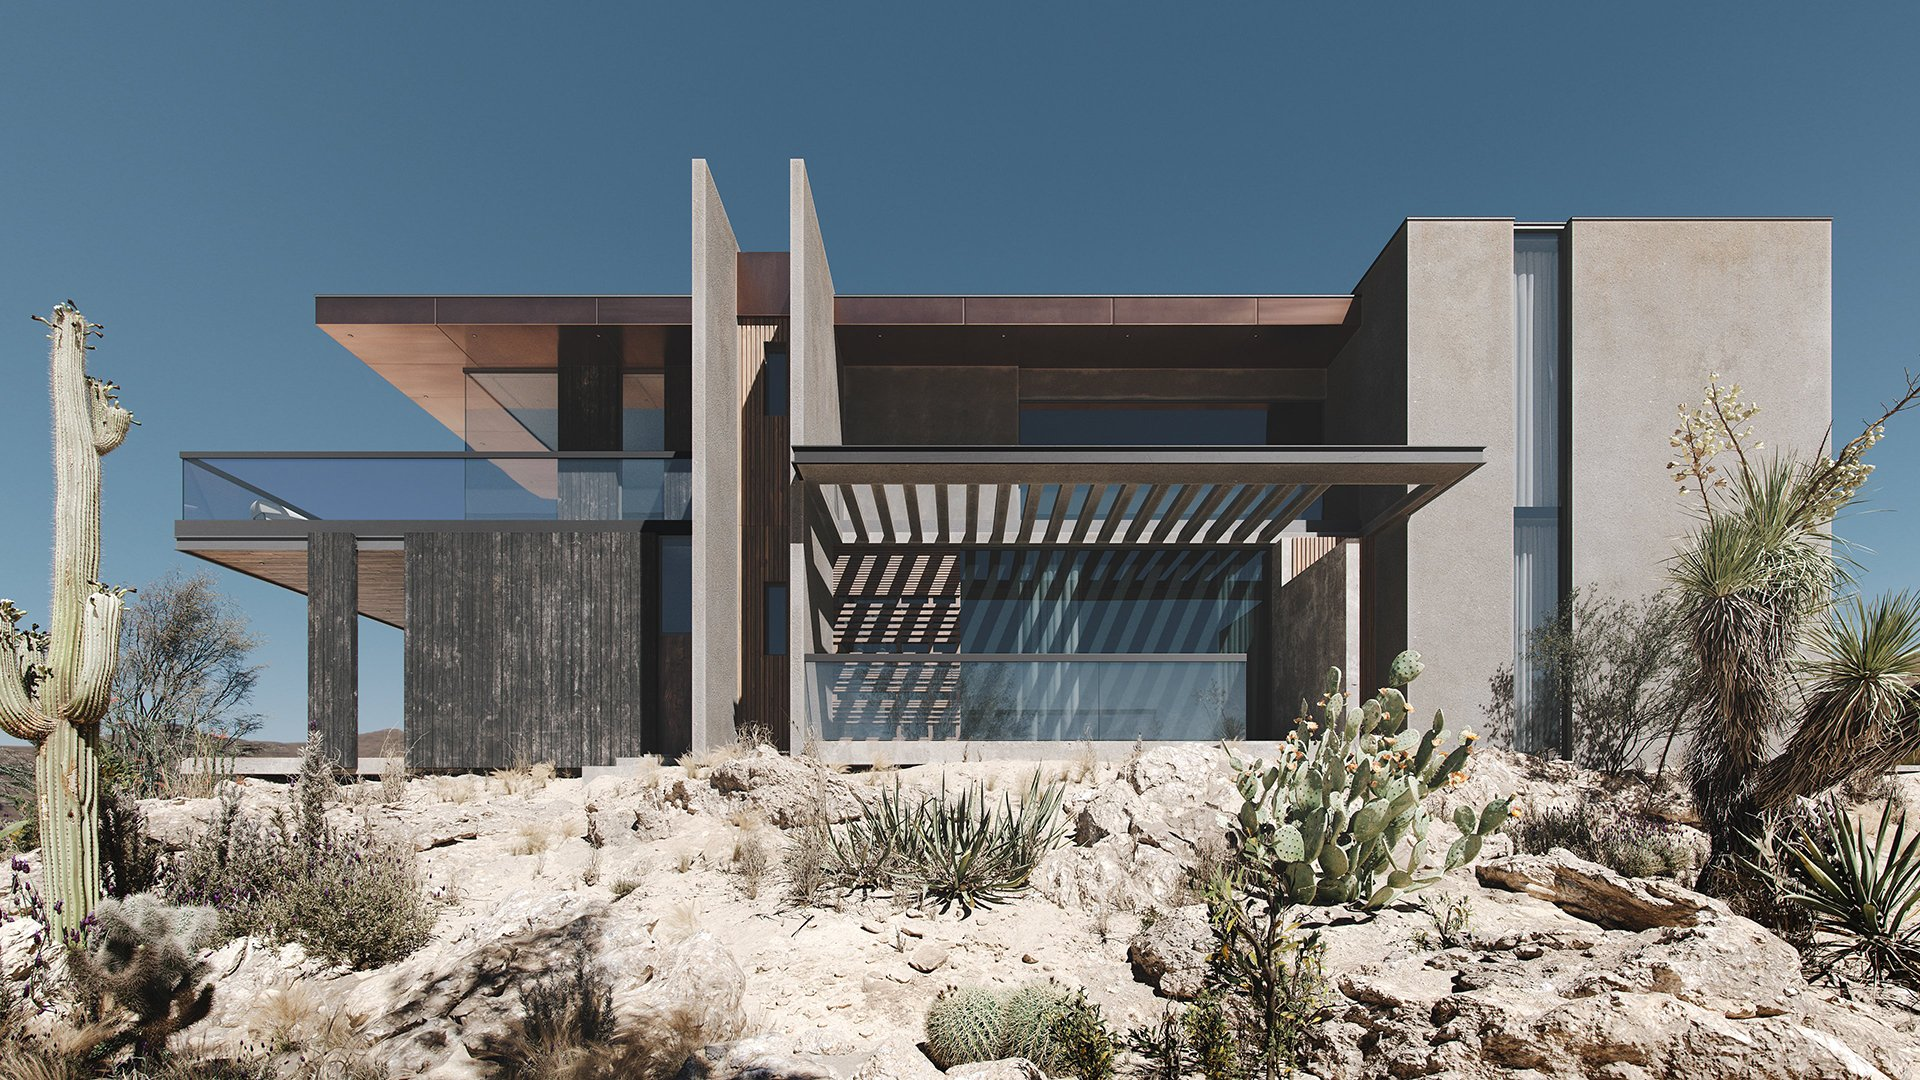 Residential Exterior Renderings of a Desert House